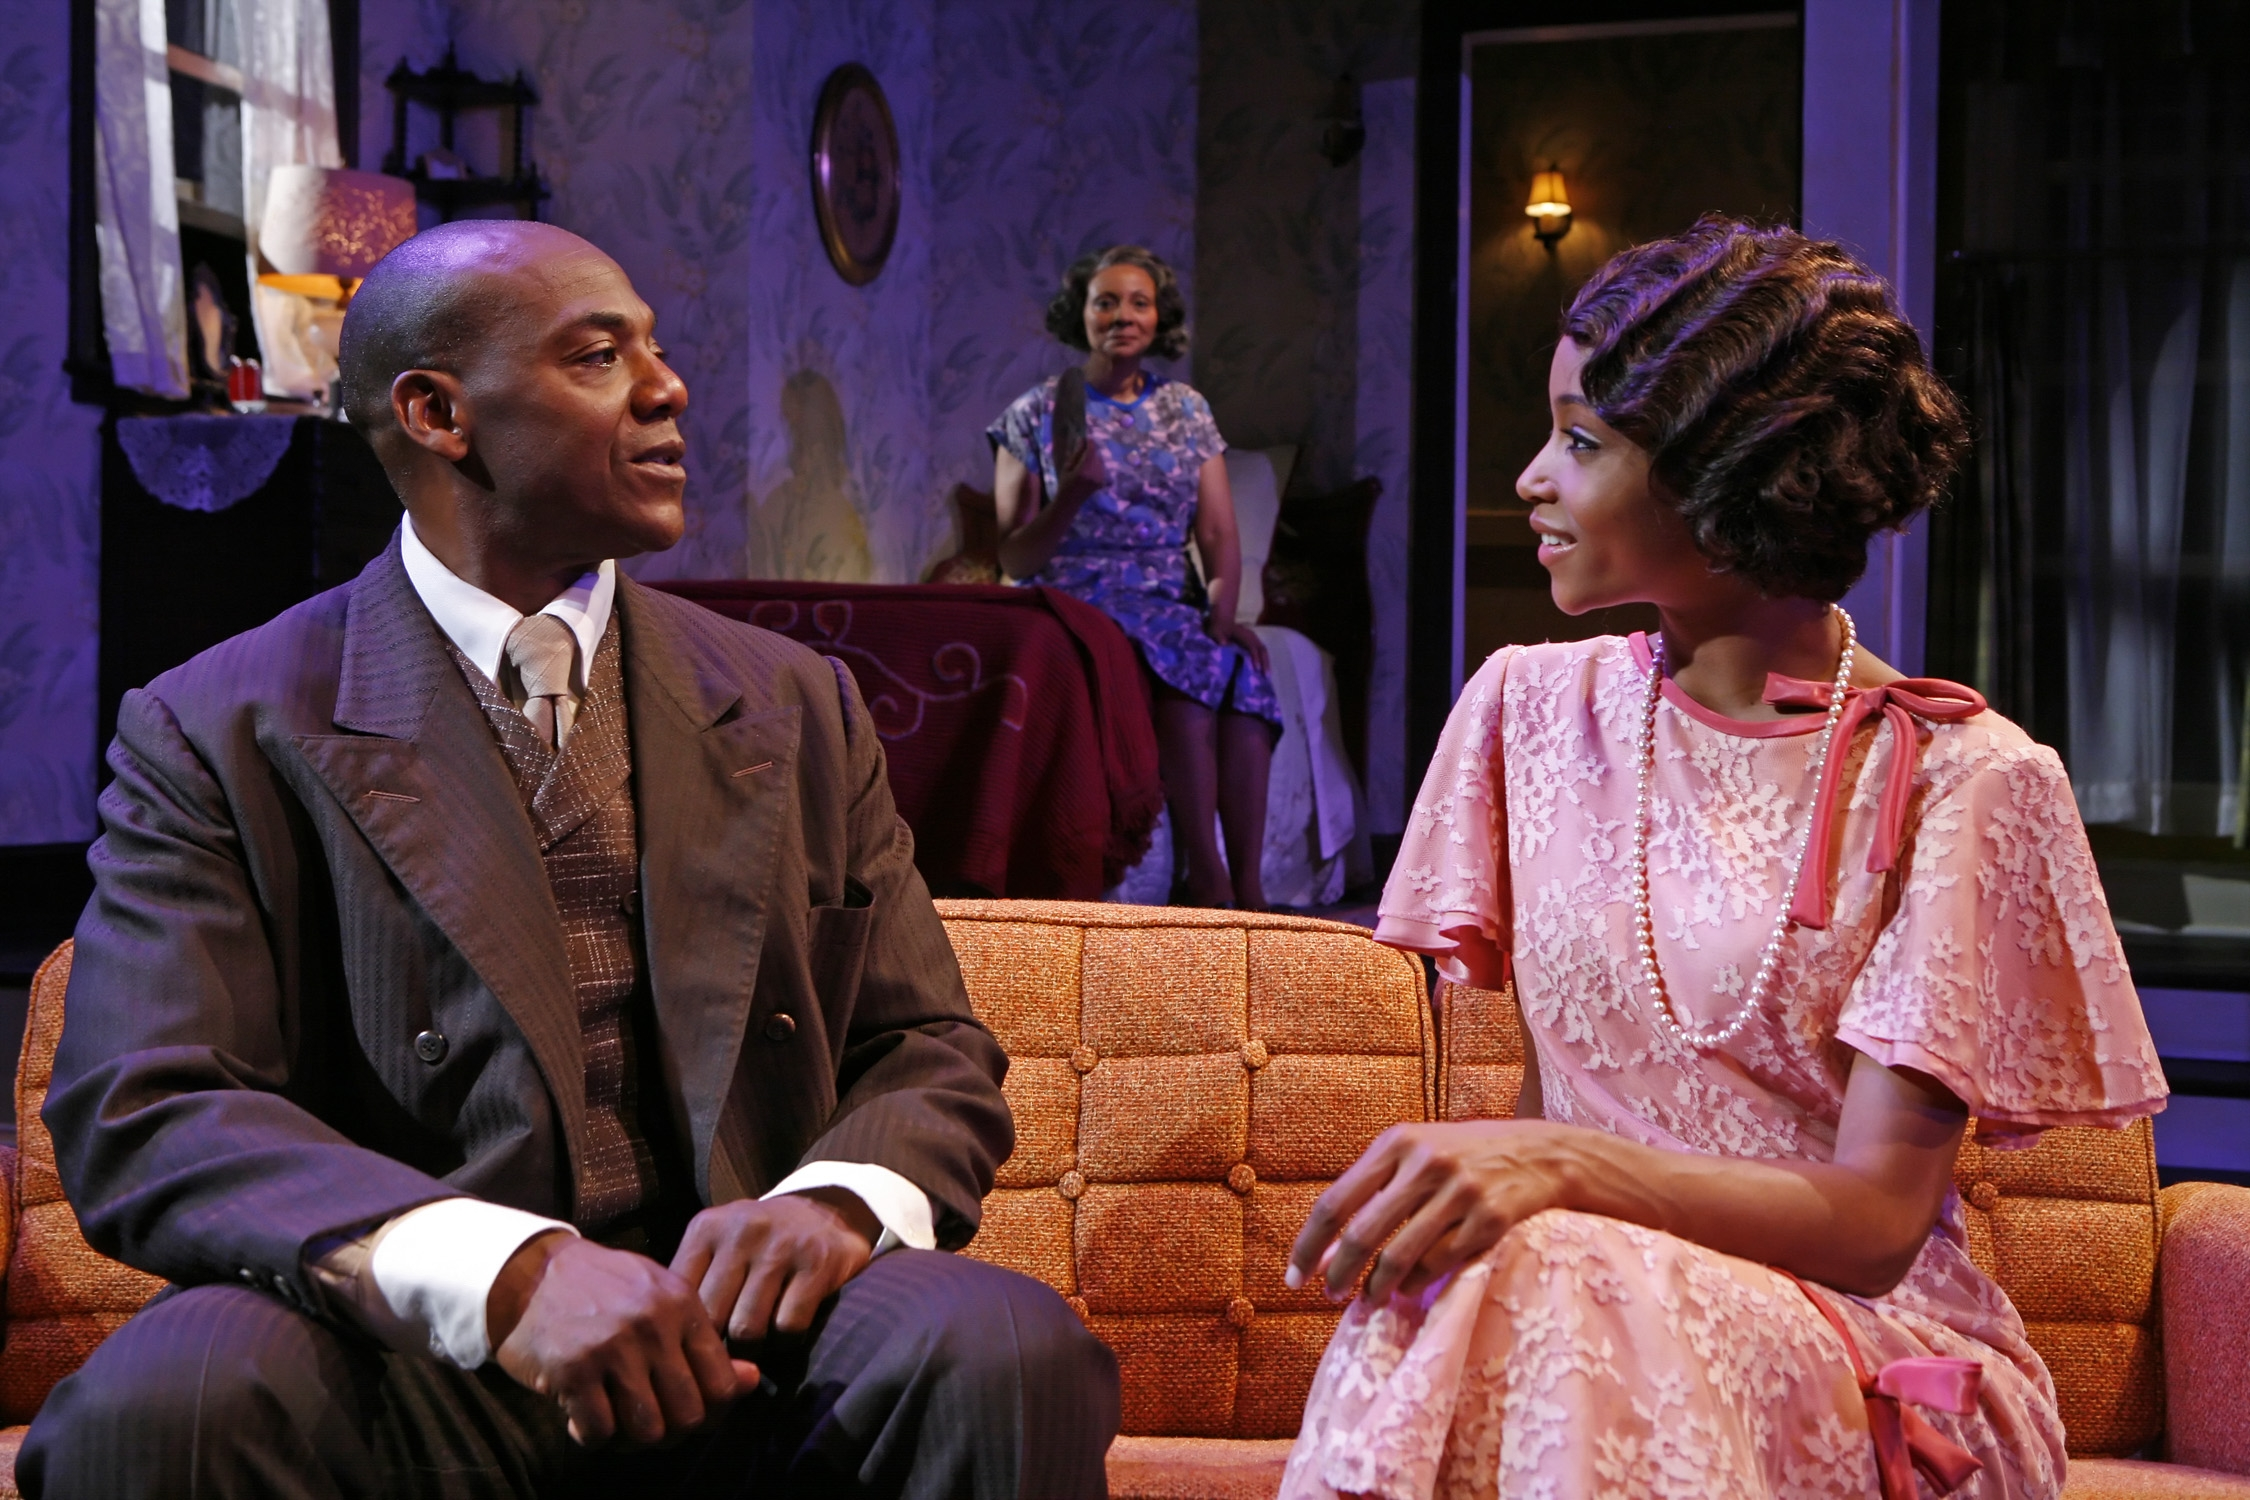 Production Photo 4 - Jelks_Uggams_Yaya[1].JPG